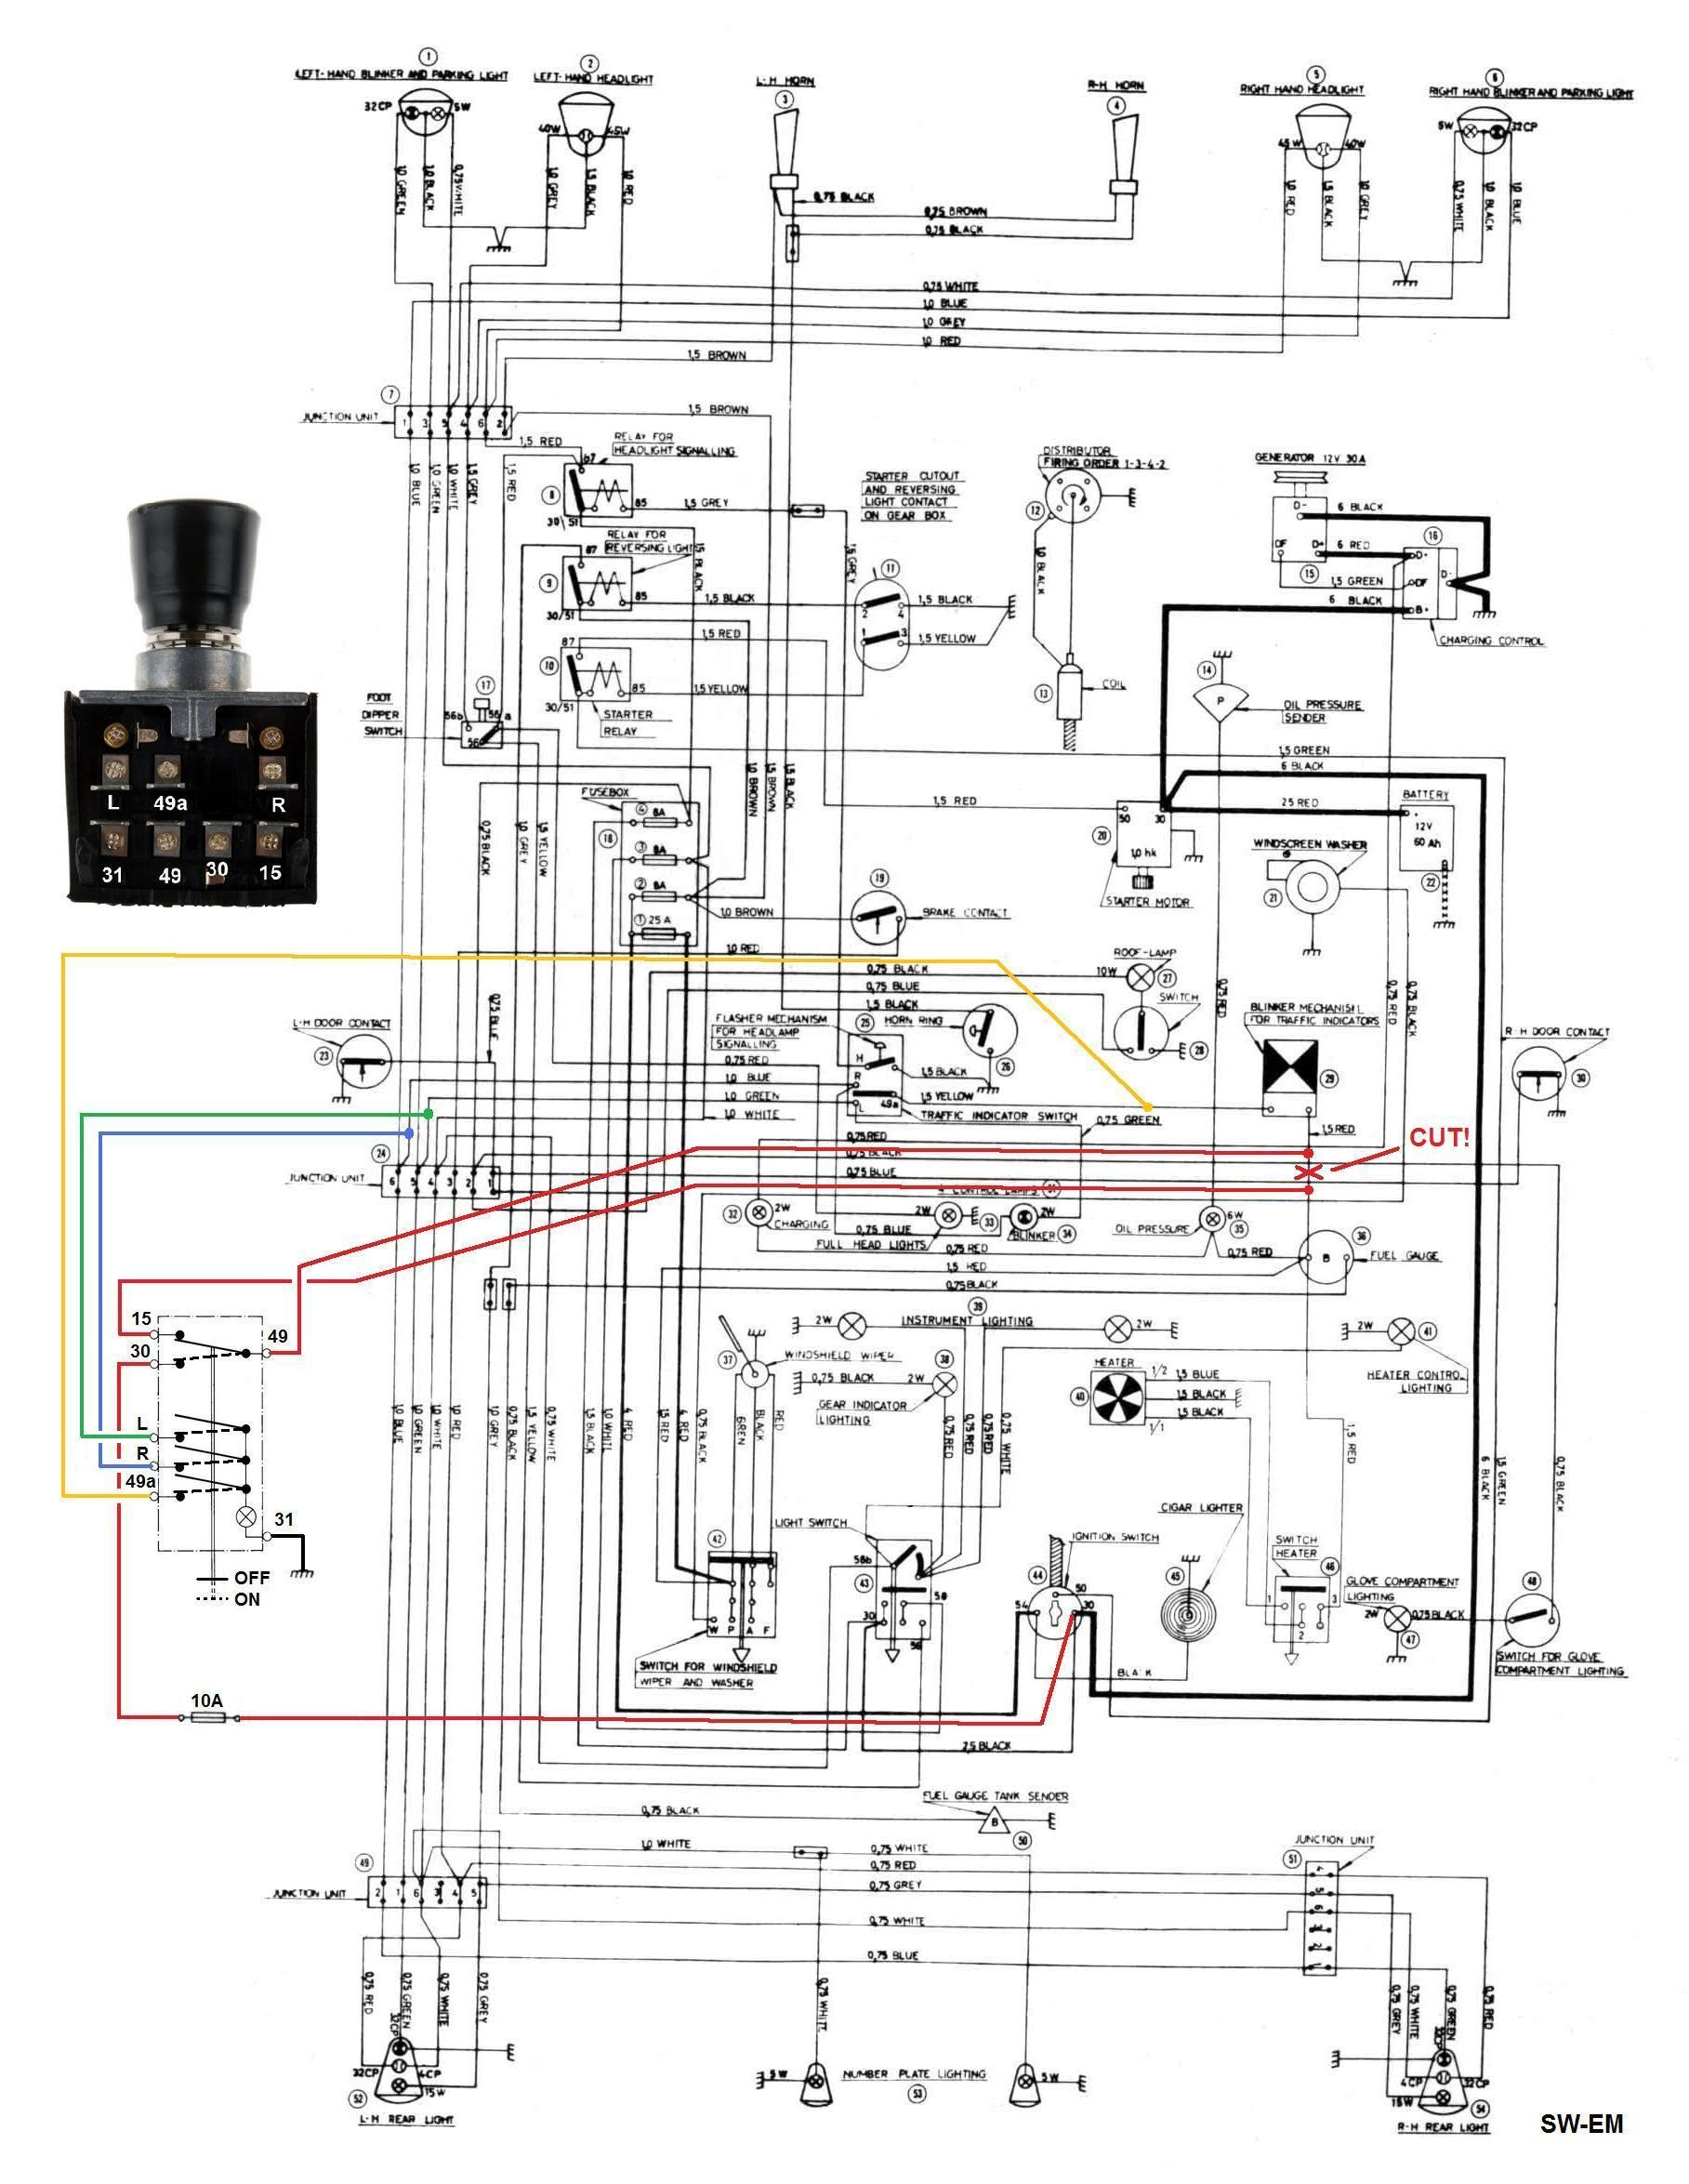 signal light flasher wiring diagram land rover discovery stereo my